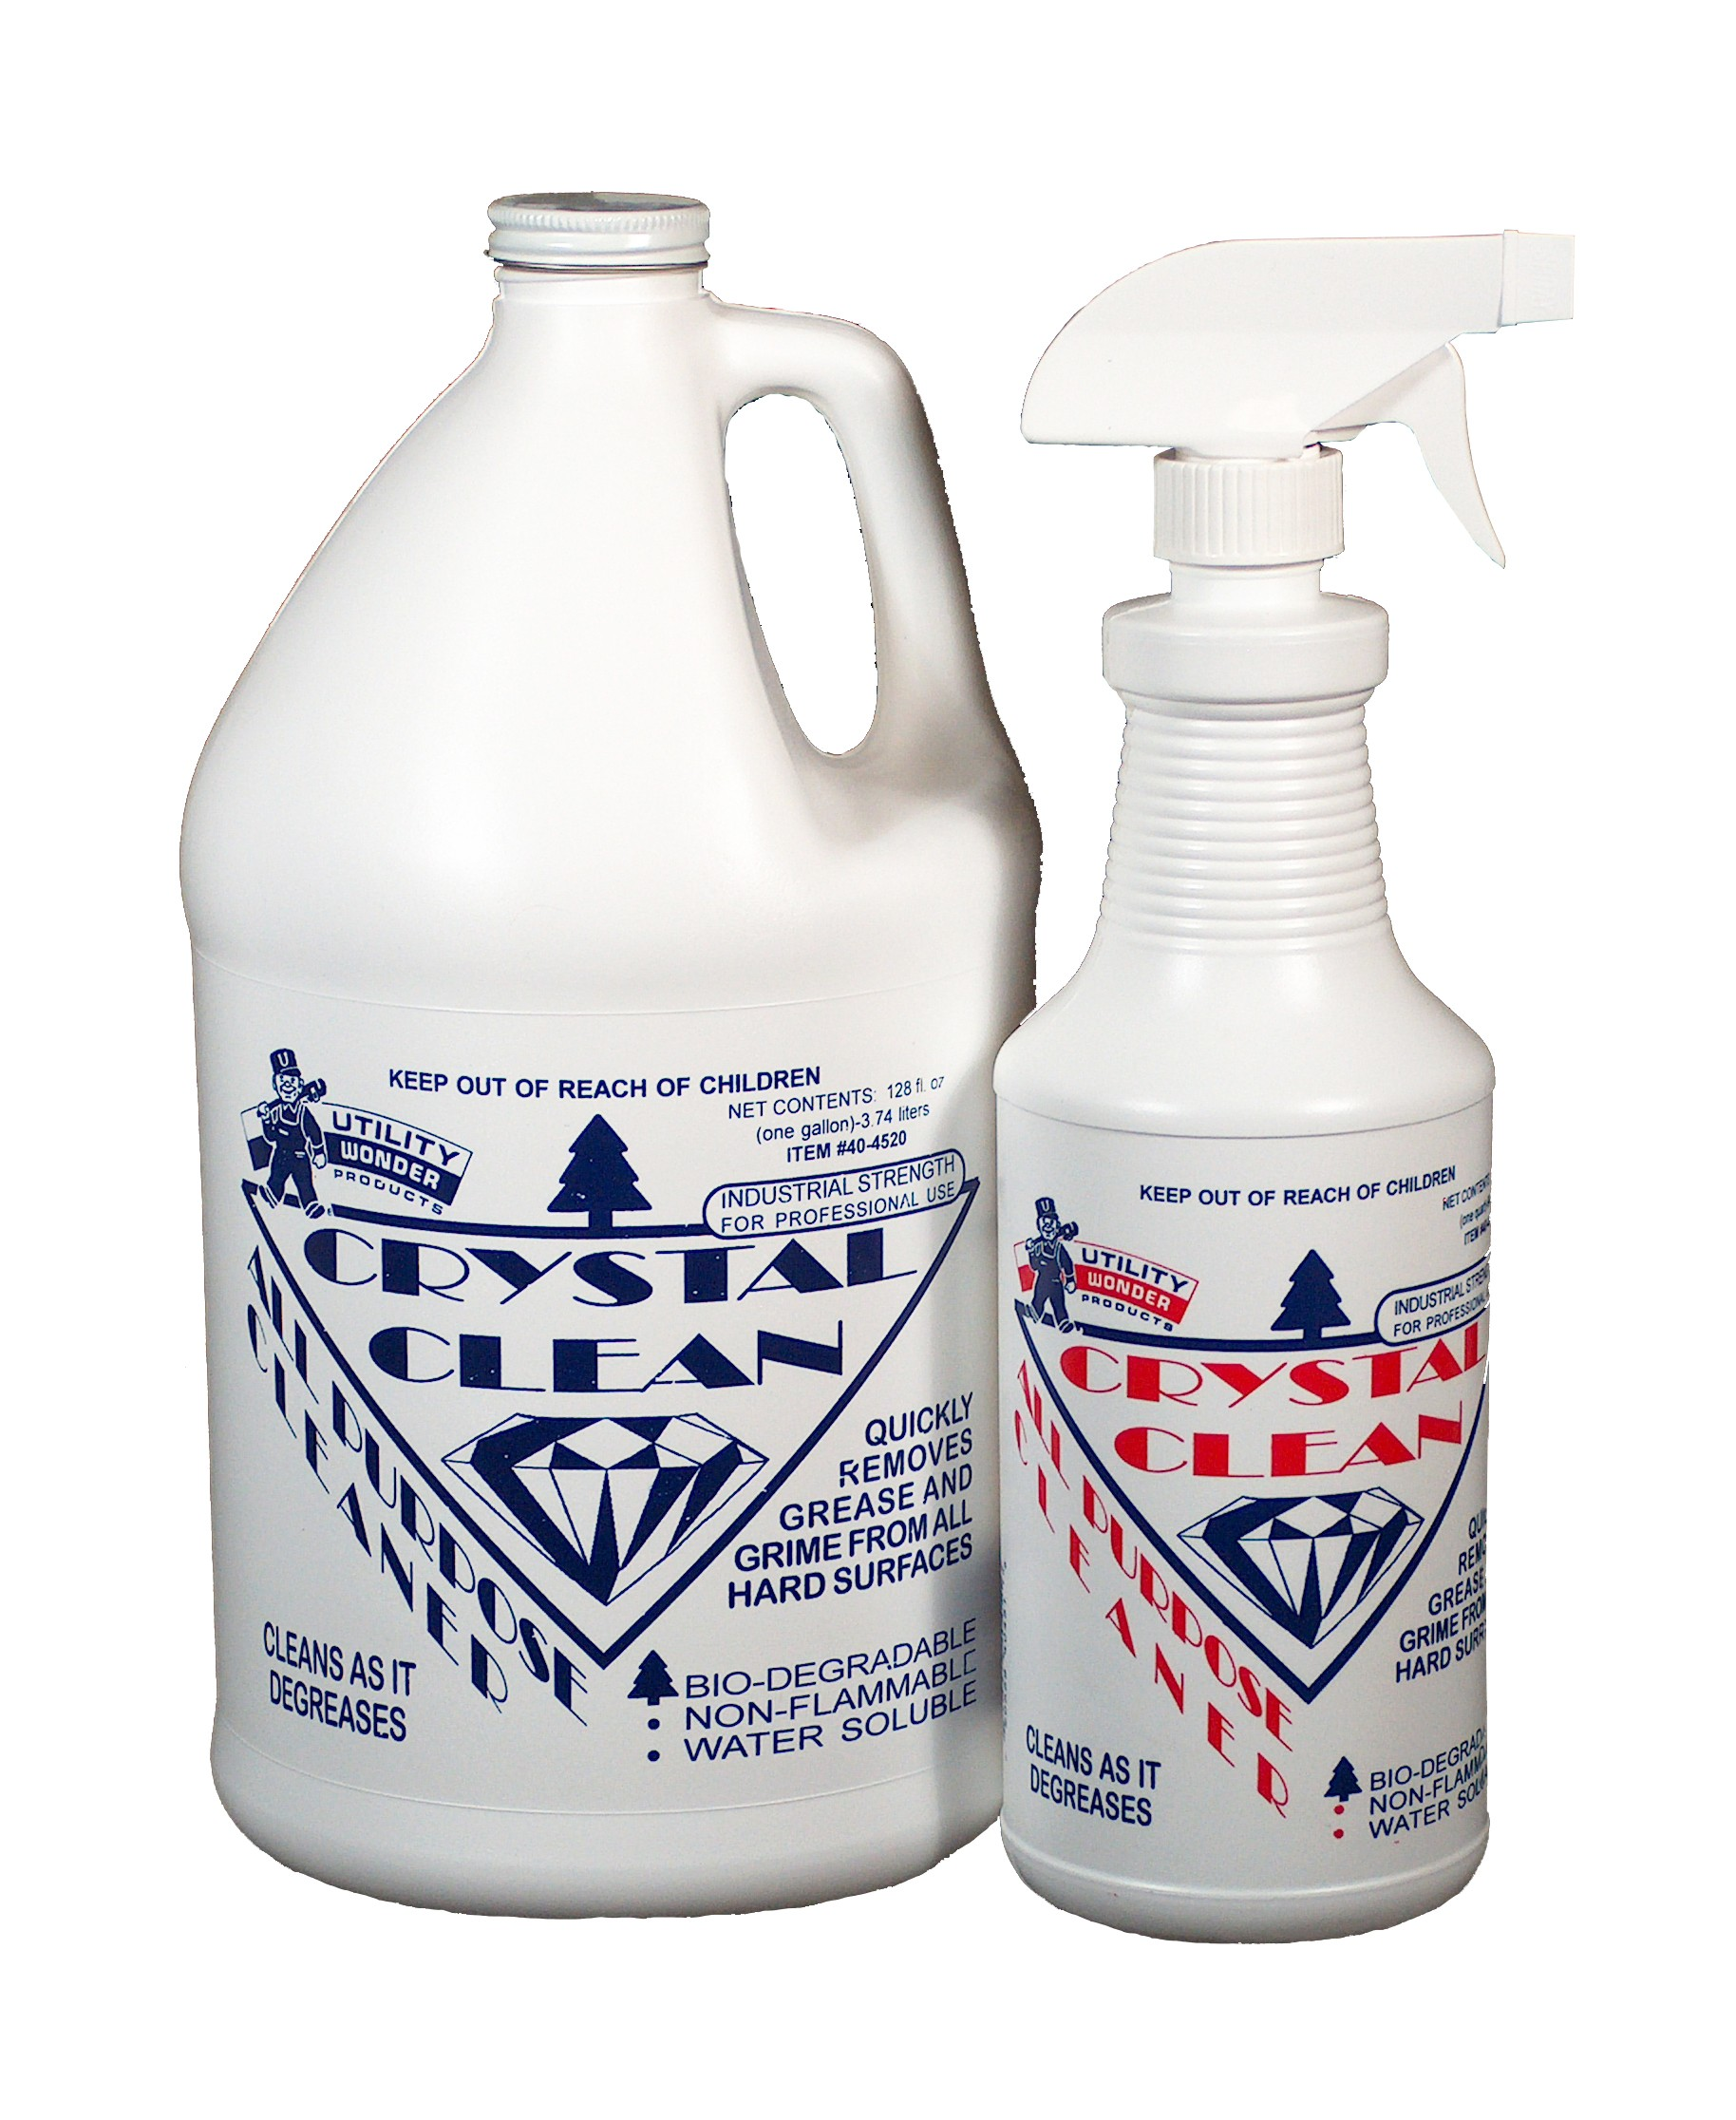 CRYSTAL CLEAN ALL-PURPOSE CLEANER/DEGREASER